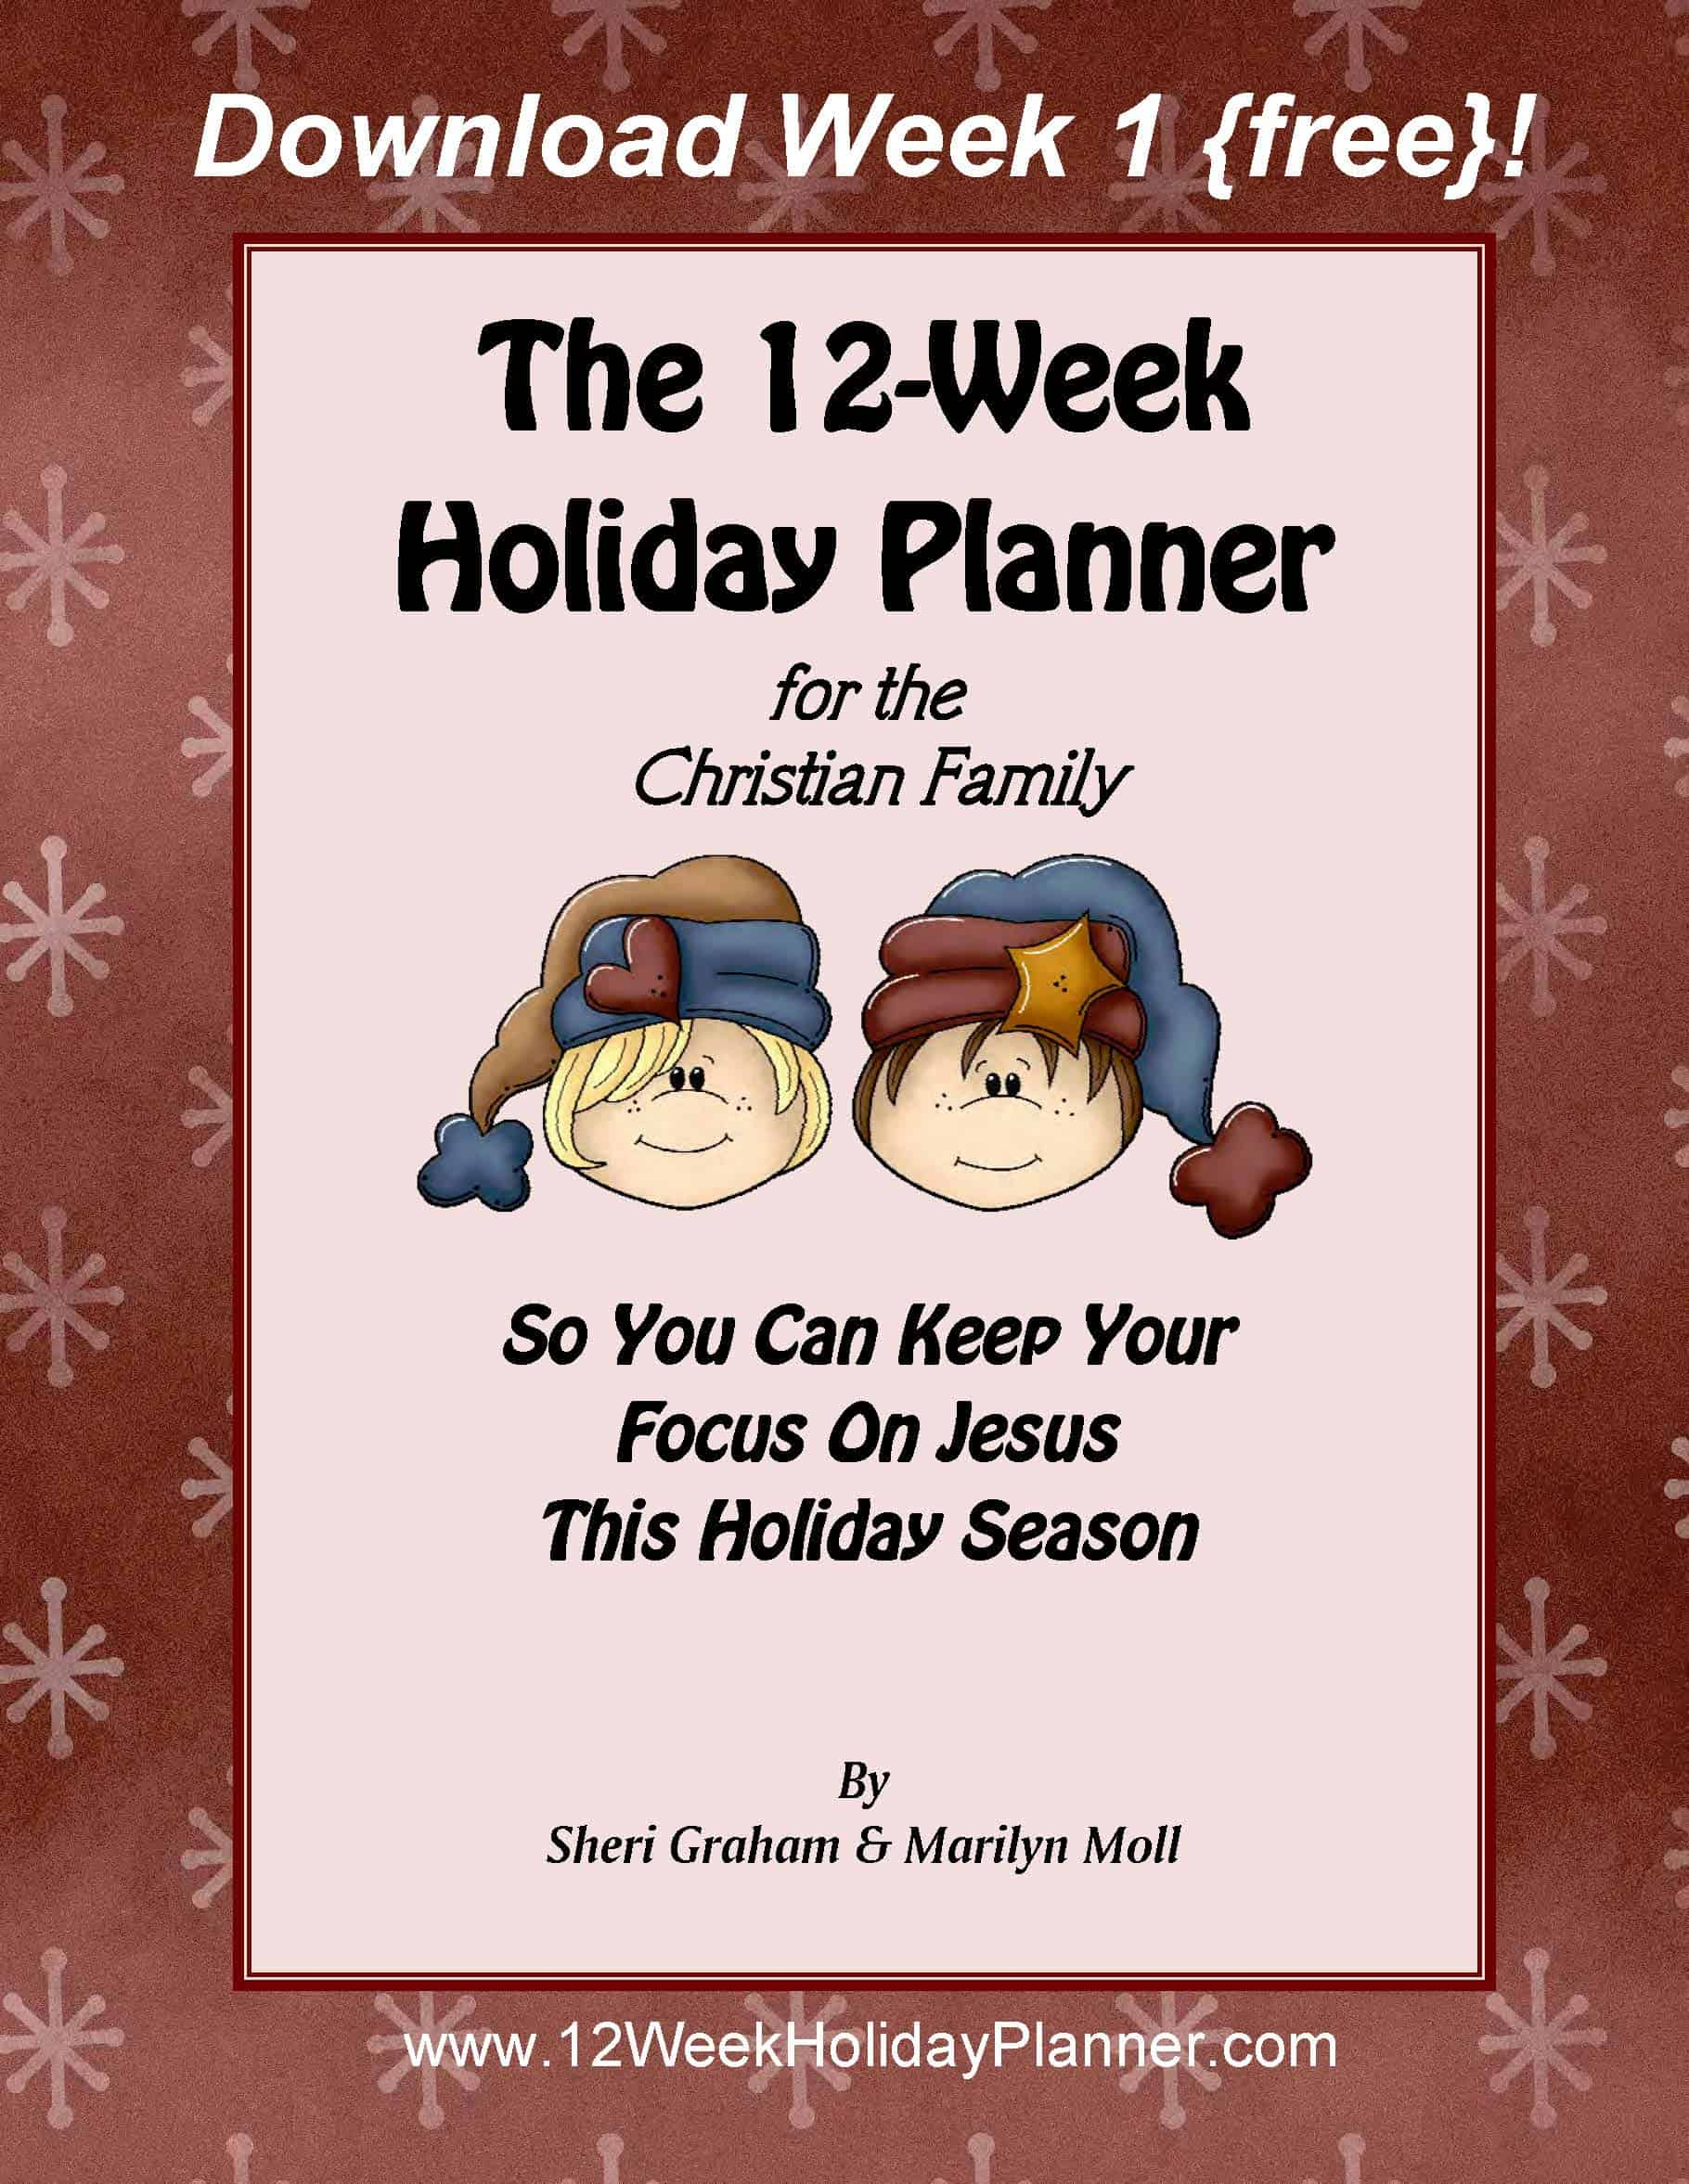 Have you started the Holiday Planner yet?